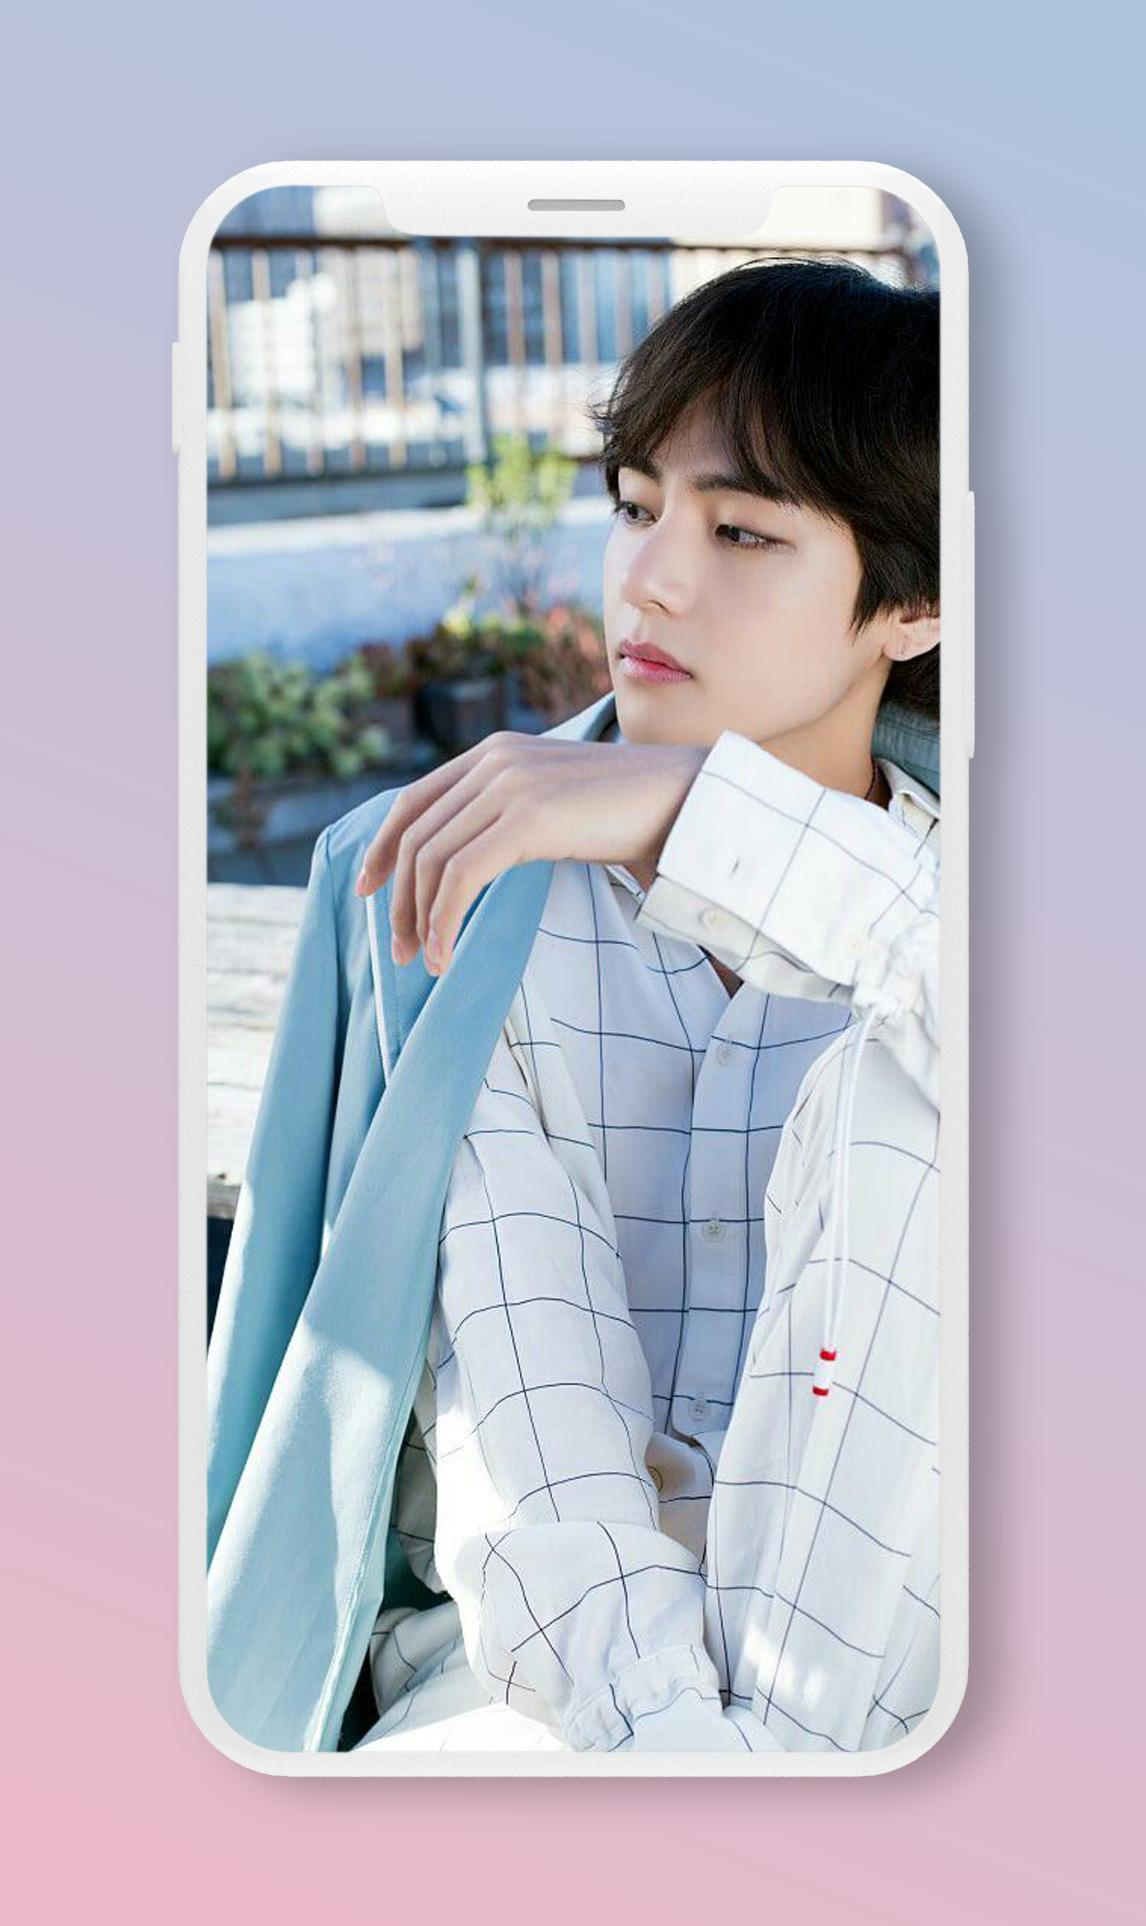 Bts Wallpaper Hd Live 3d Effect For Android Apk Download